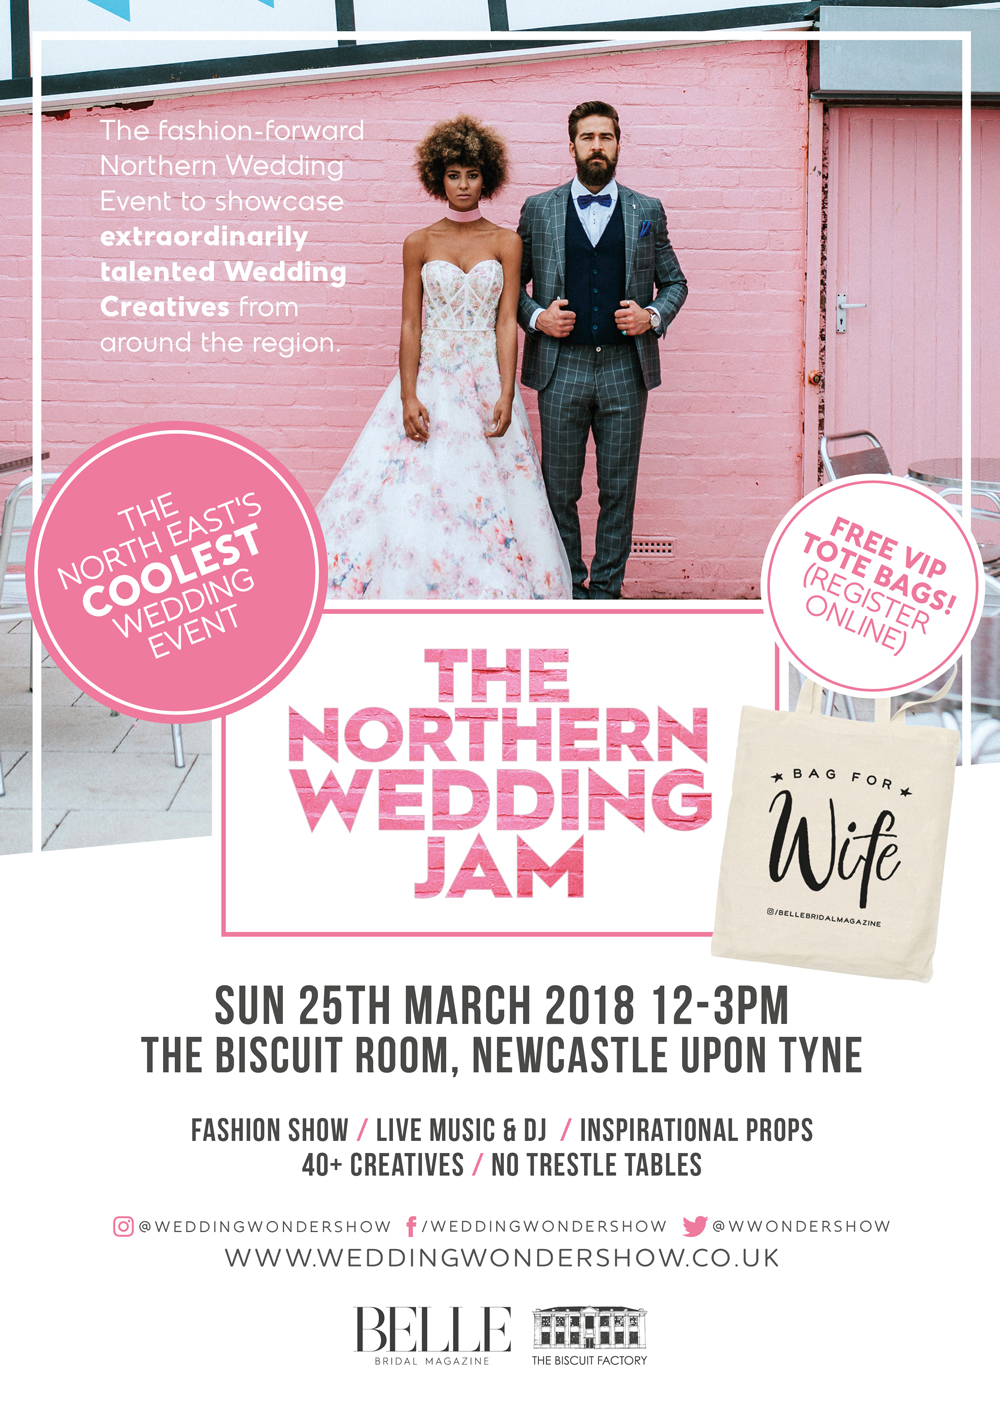 Sunday 25th March 2018 12-3pm - The Biscuit Room, Newcastle upon Tyne